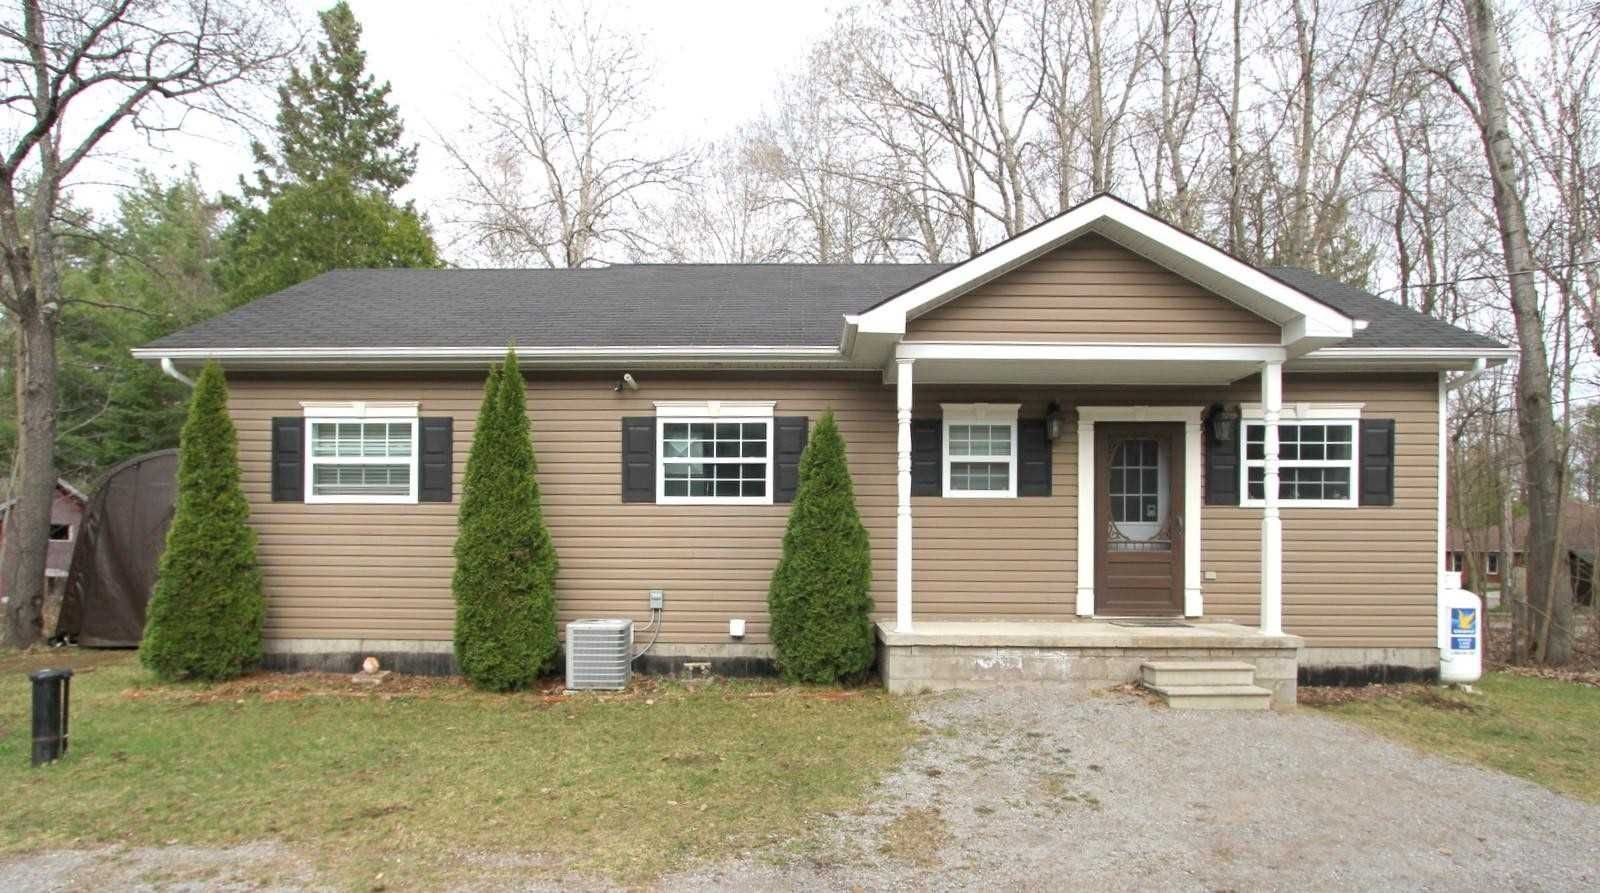 Main Photo: 7222 Highway 35 Road in Kawartha Lakes: Rural Laxton House (Bungalow-Raised) for sale : MLS®# X5200044